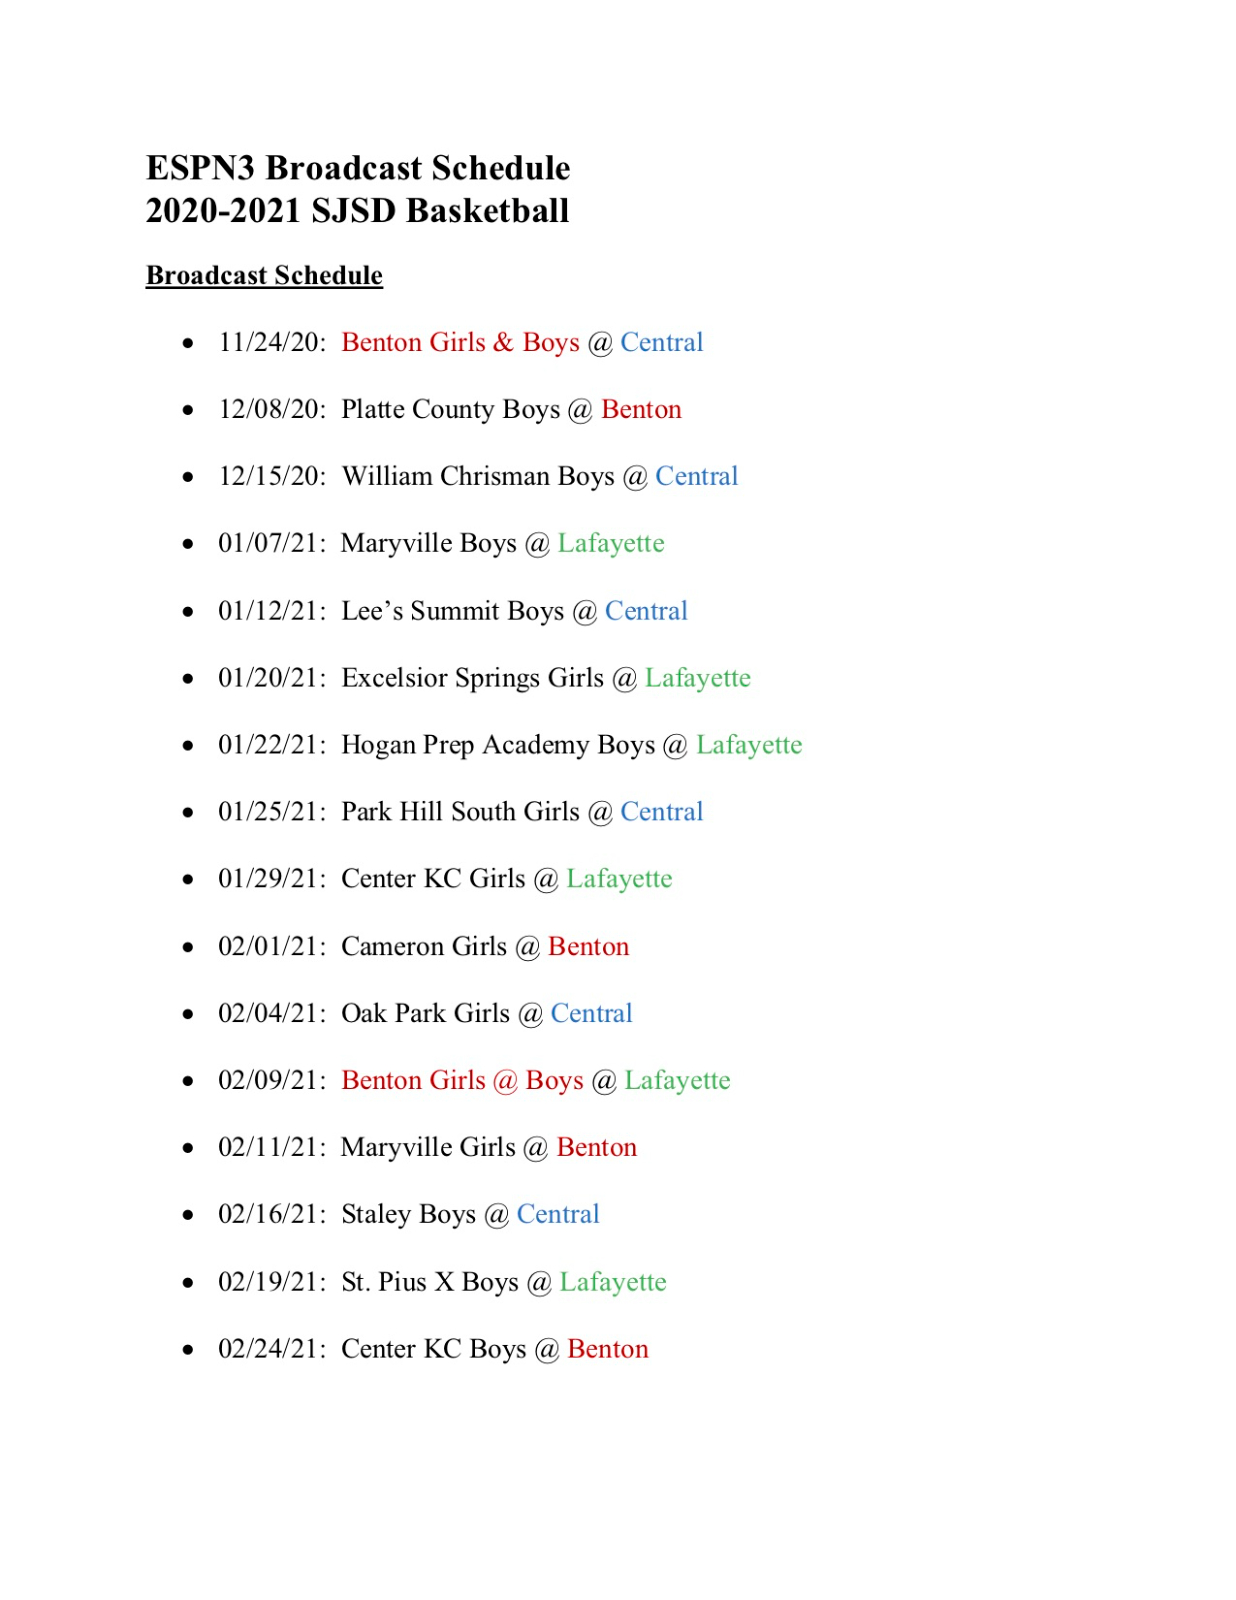 2020-2021 ESPN3 Broadcast Schedule for Boys & Girls Basketball